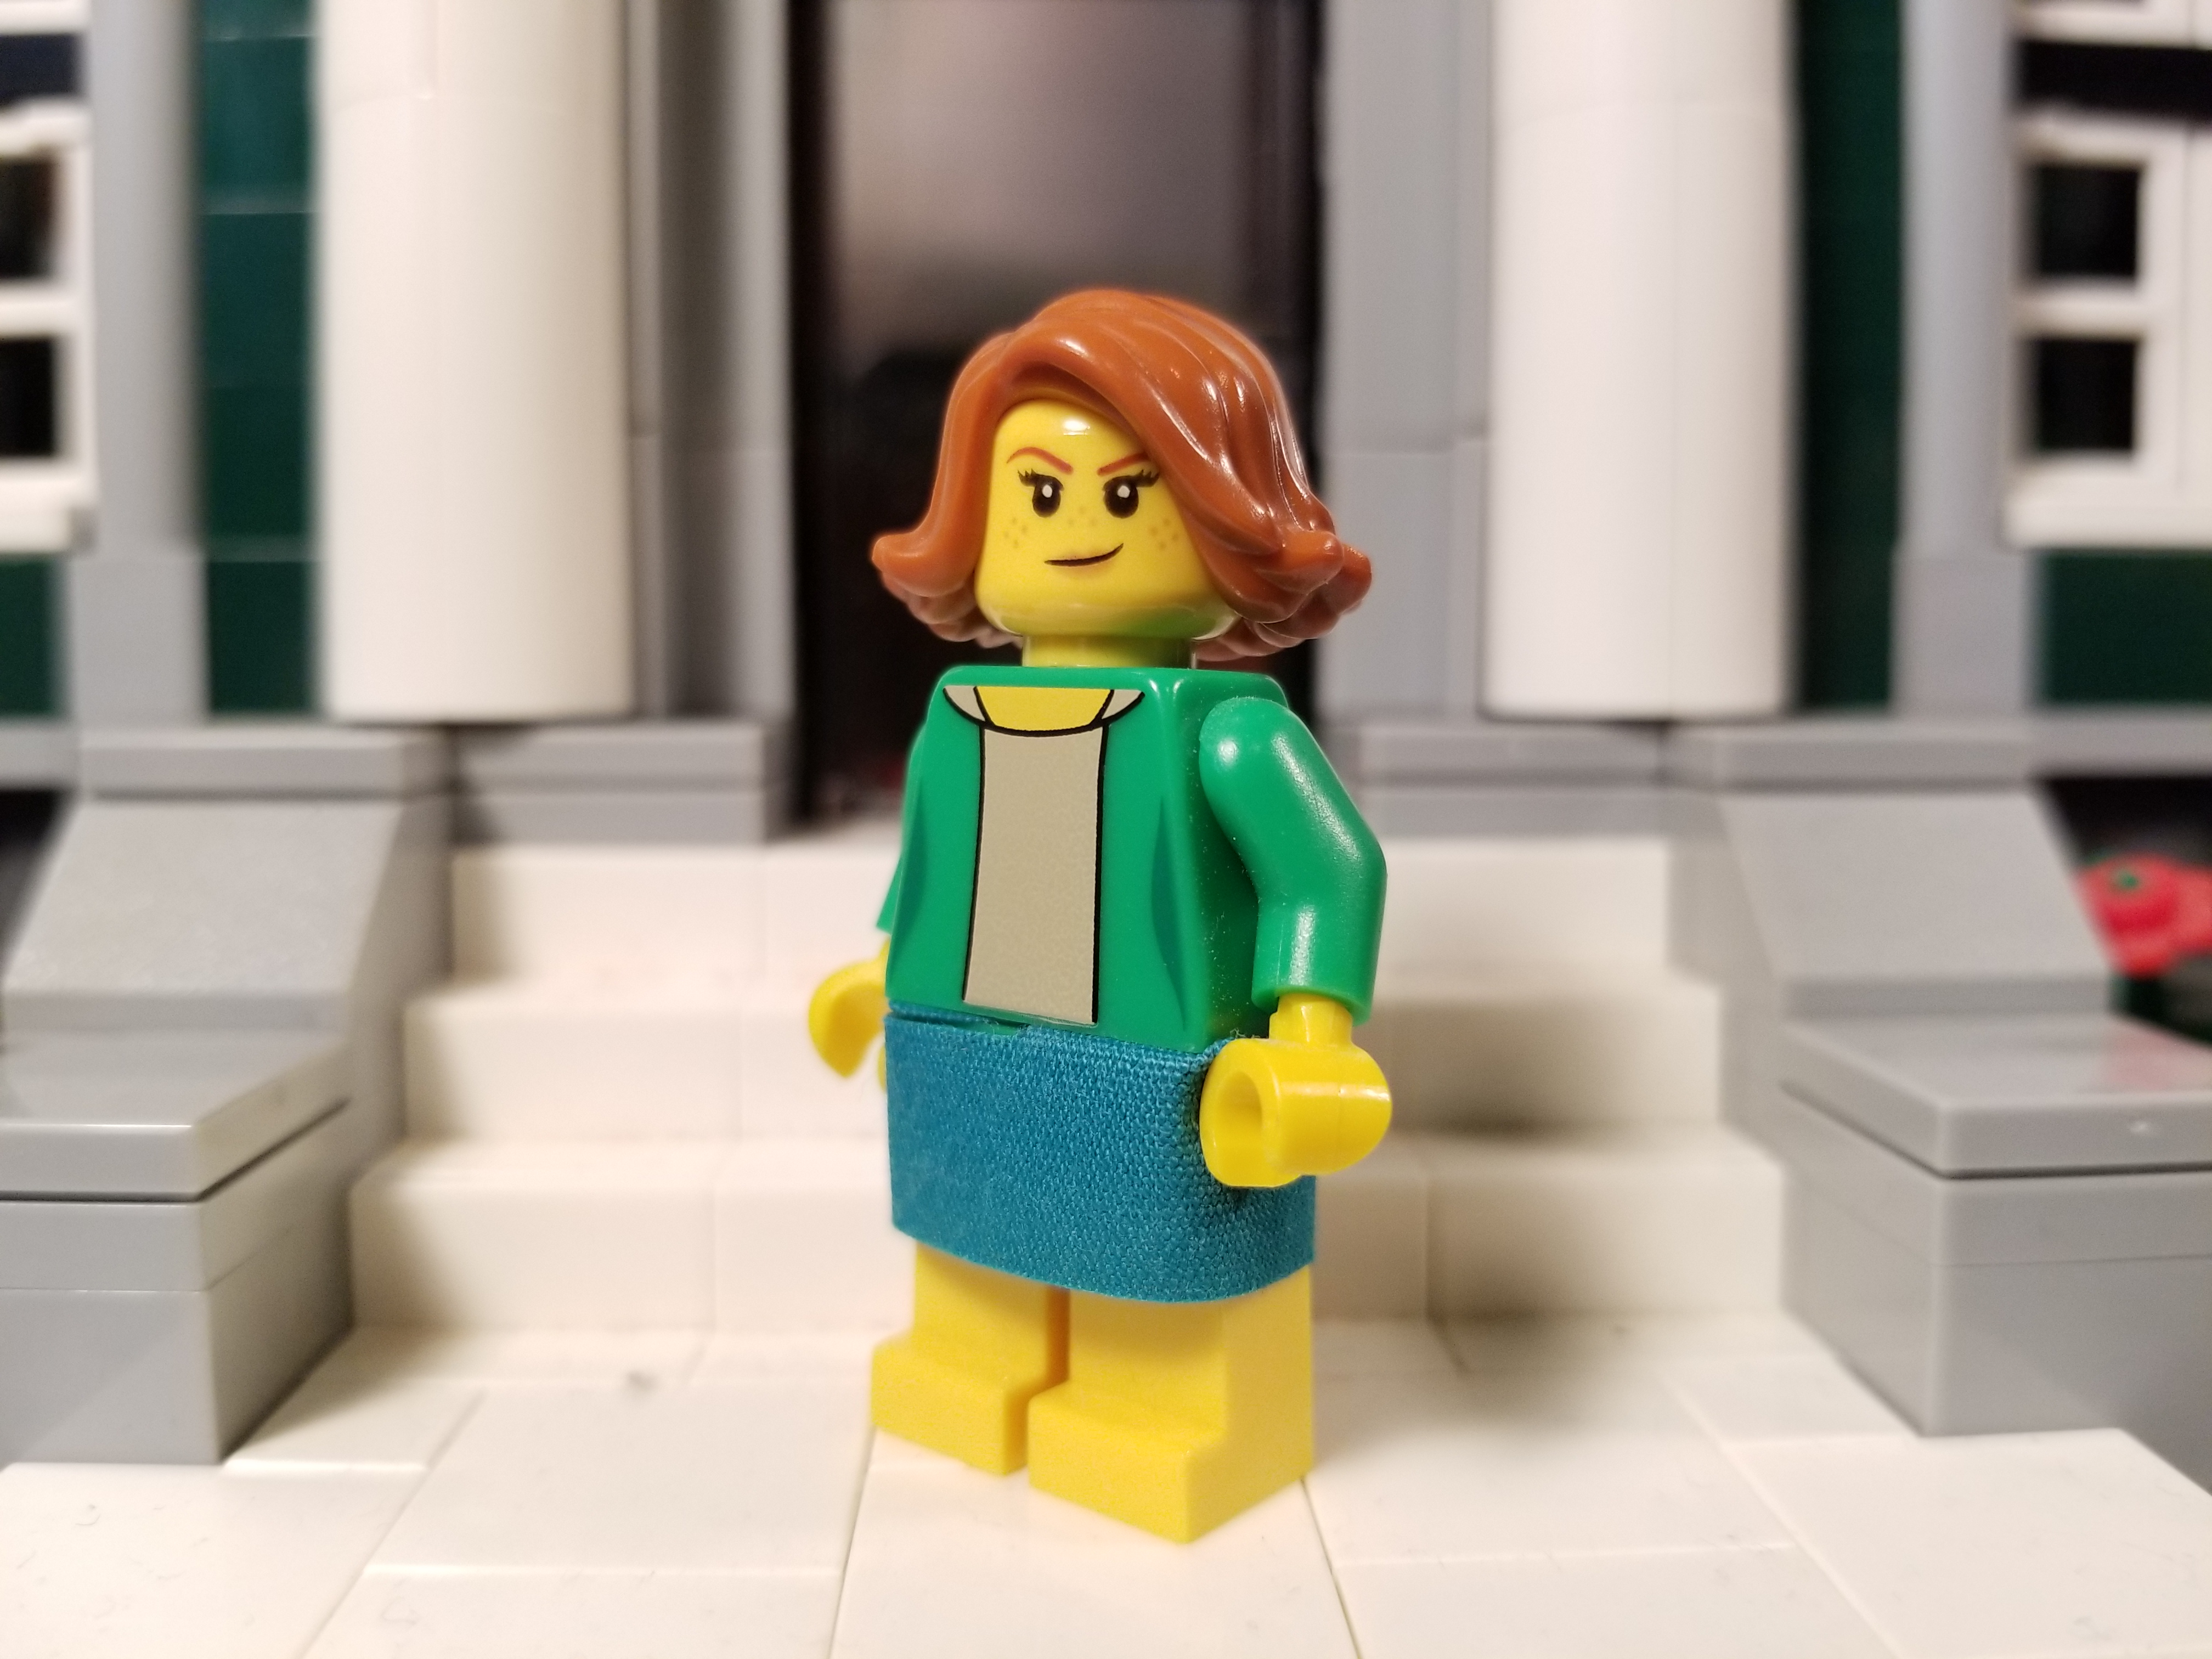 Bettina Timmy as Lego Minific (by ccznen)